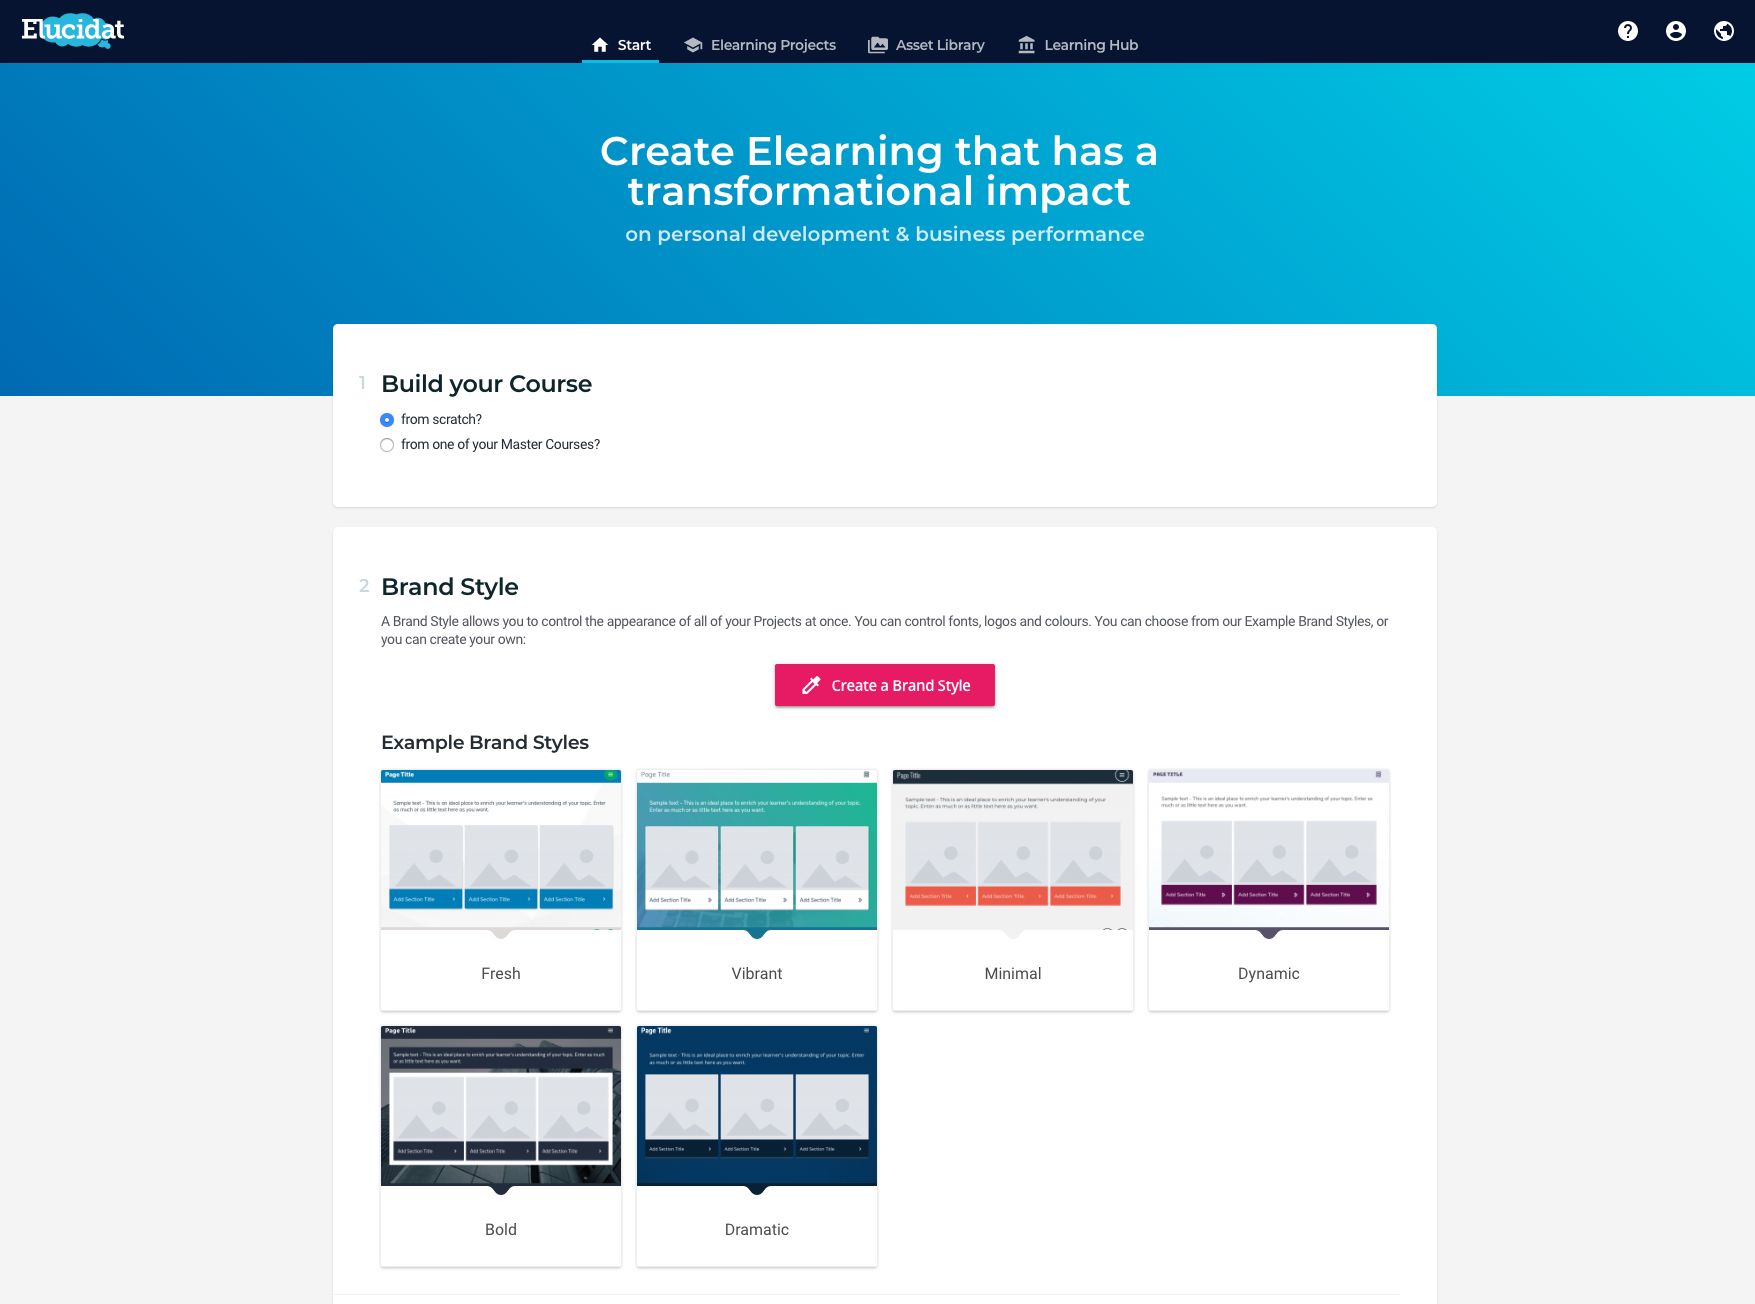 Get started by choosing a Style. You can import your style with one click and manage the styles across your projects for brand compliance and consistency.